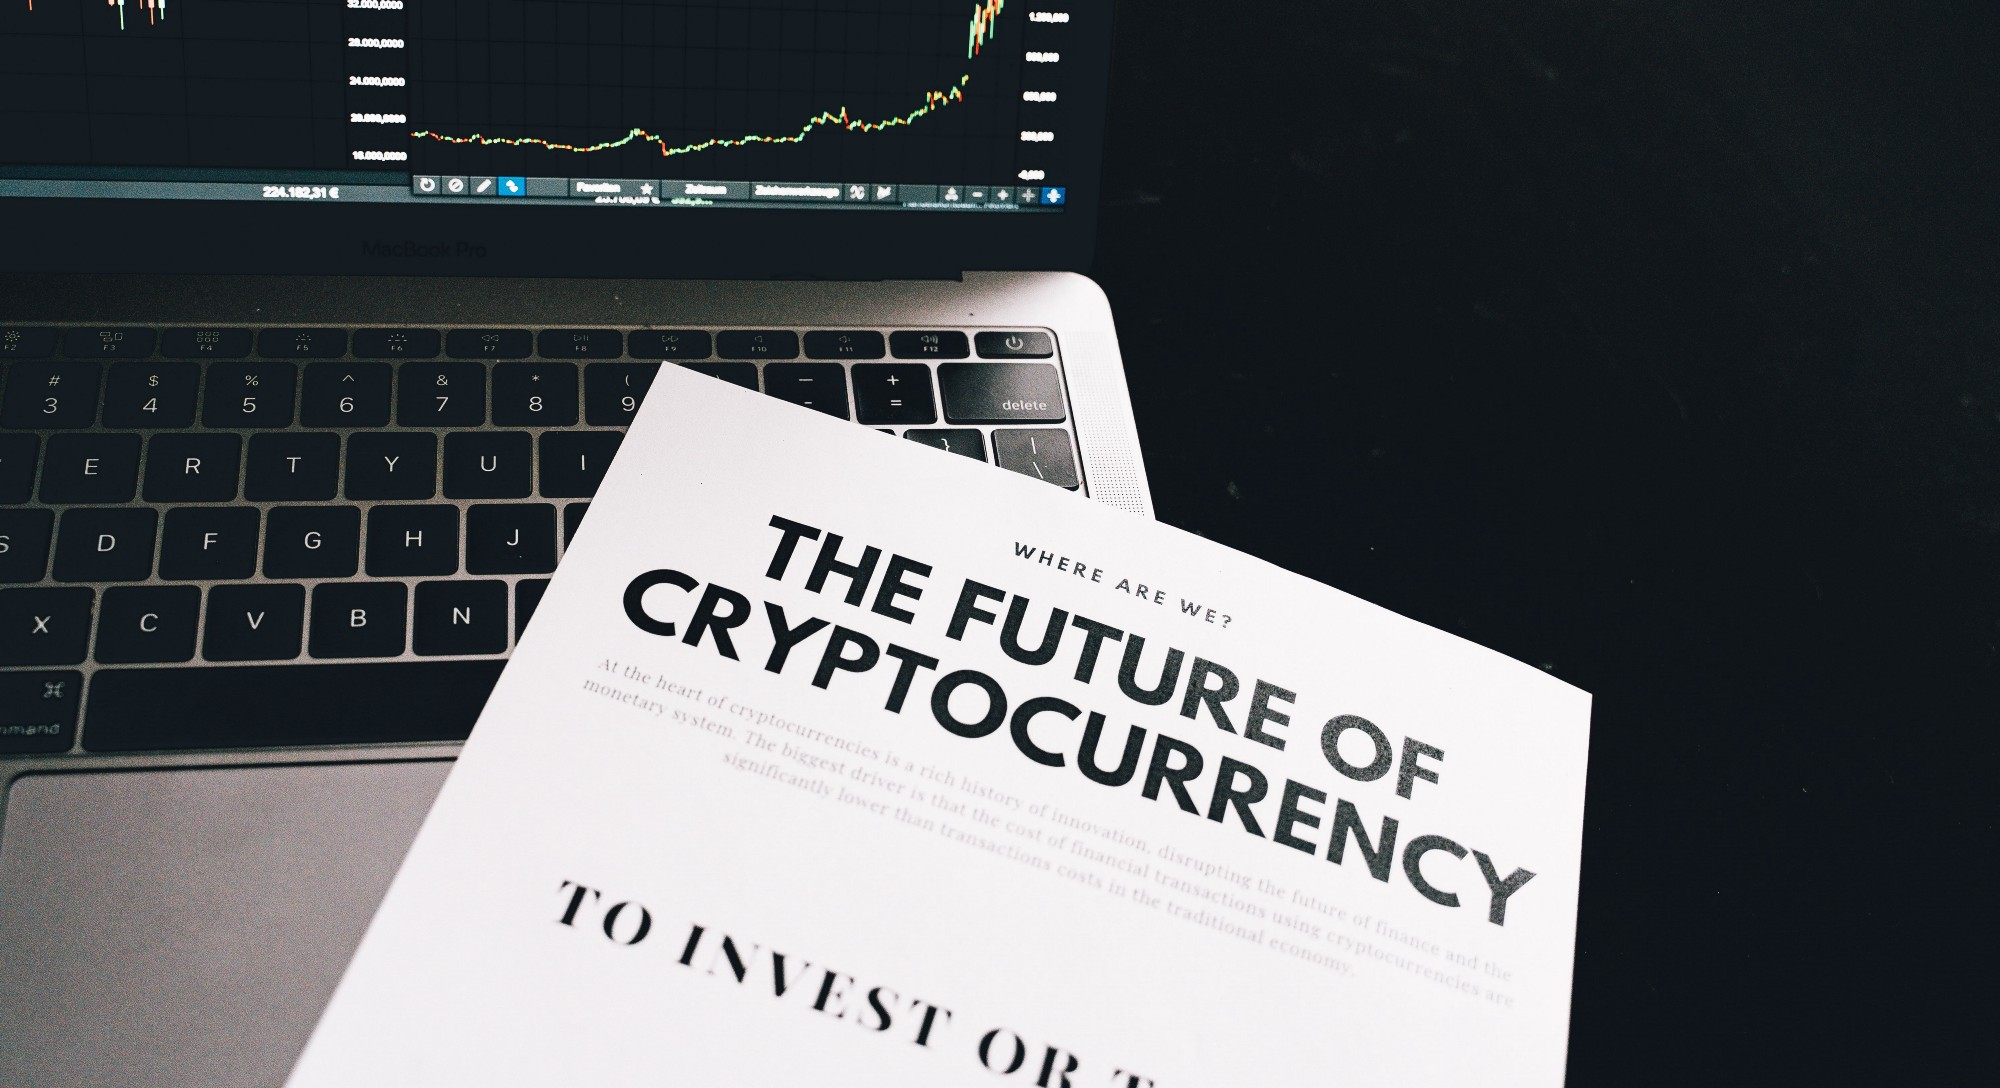 The future of cryptocurrency photo